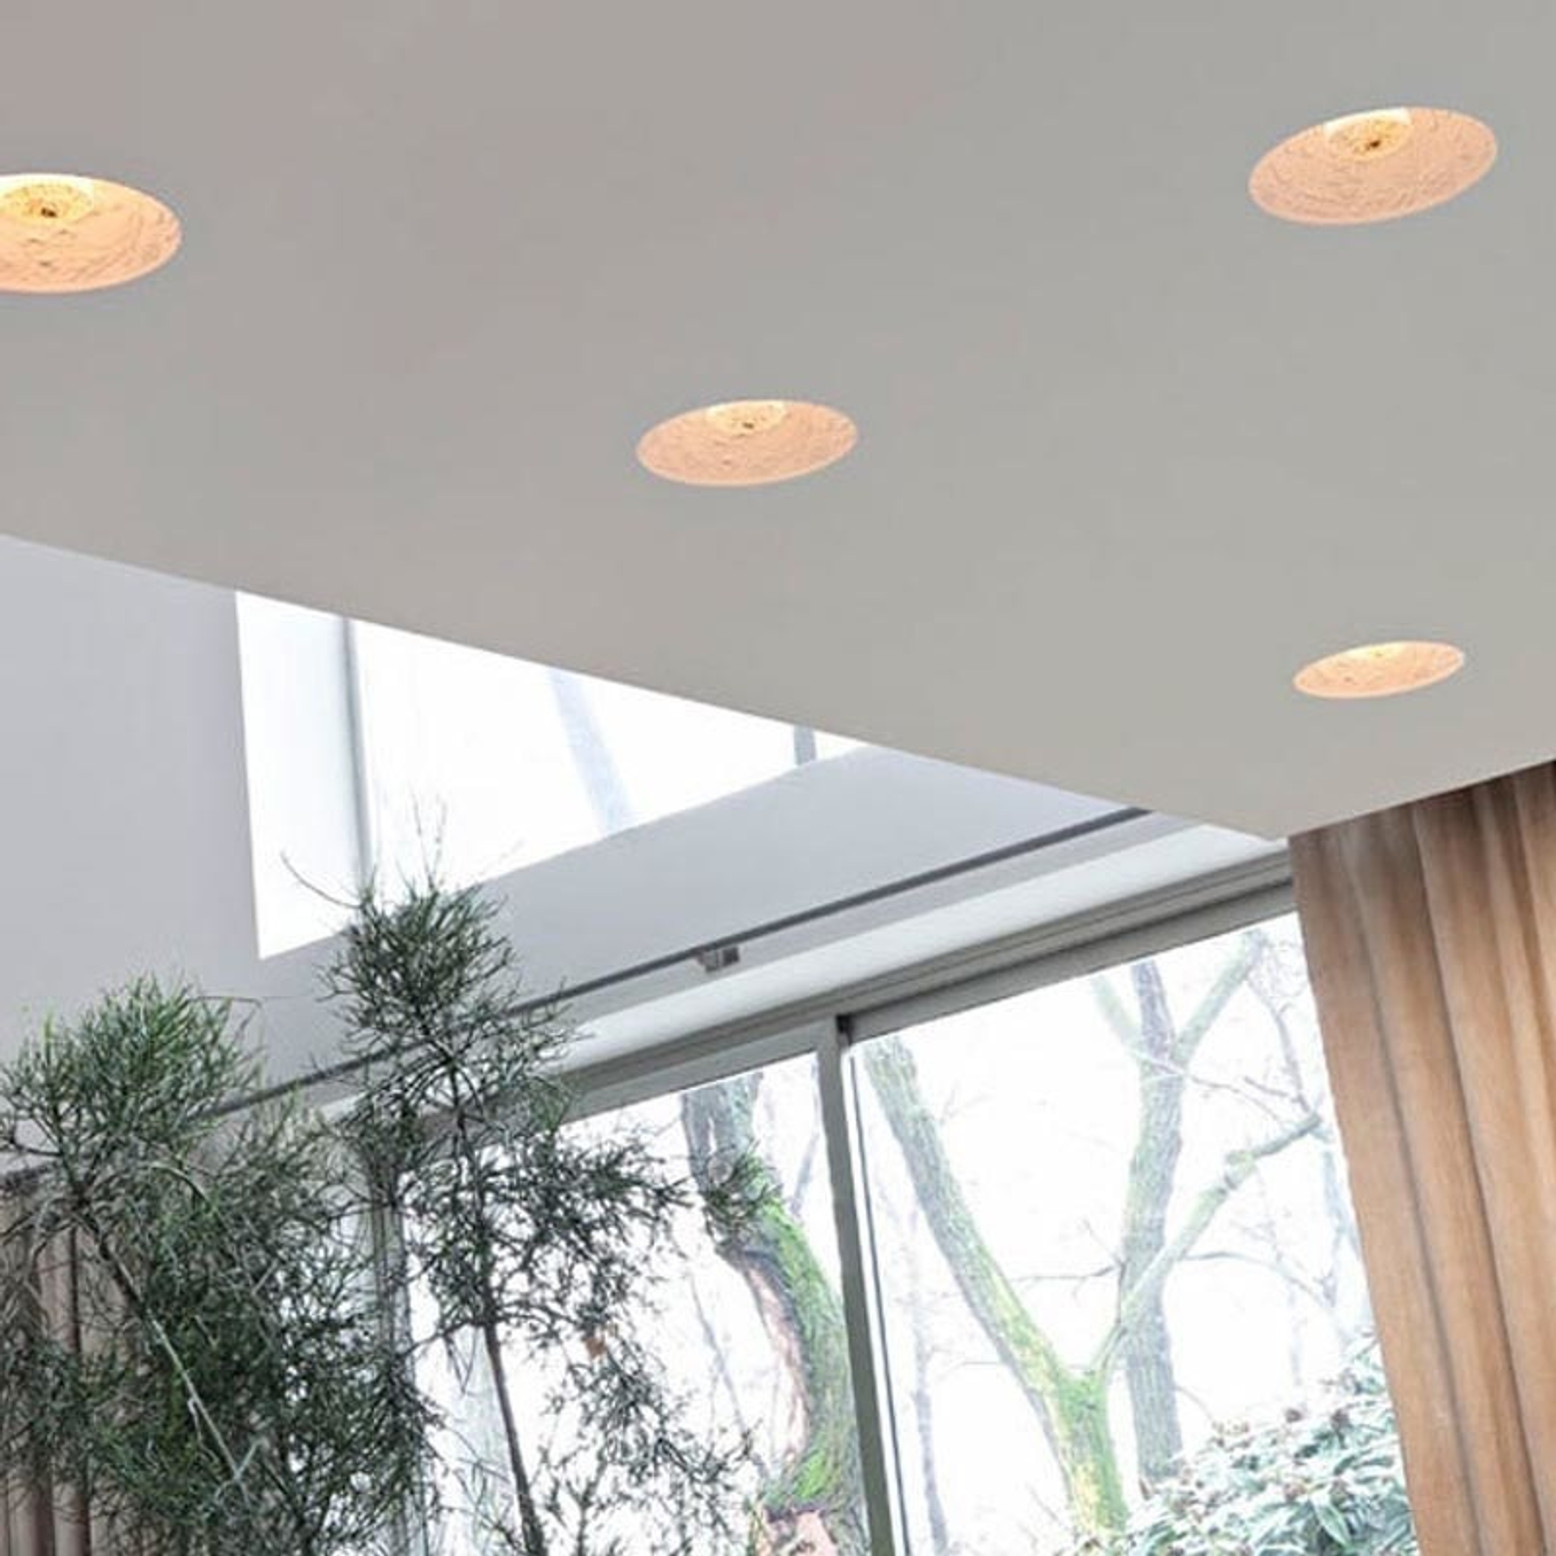 Innovative Contemporary Designer Lighting to Brighten Up Your Living Spaces